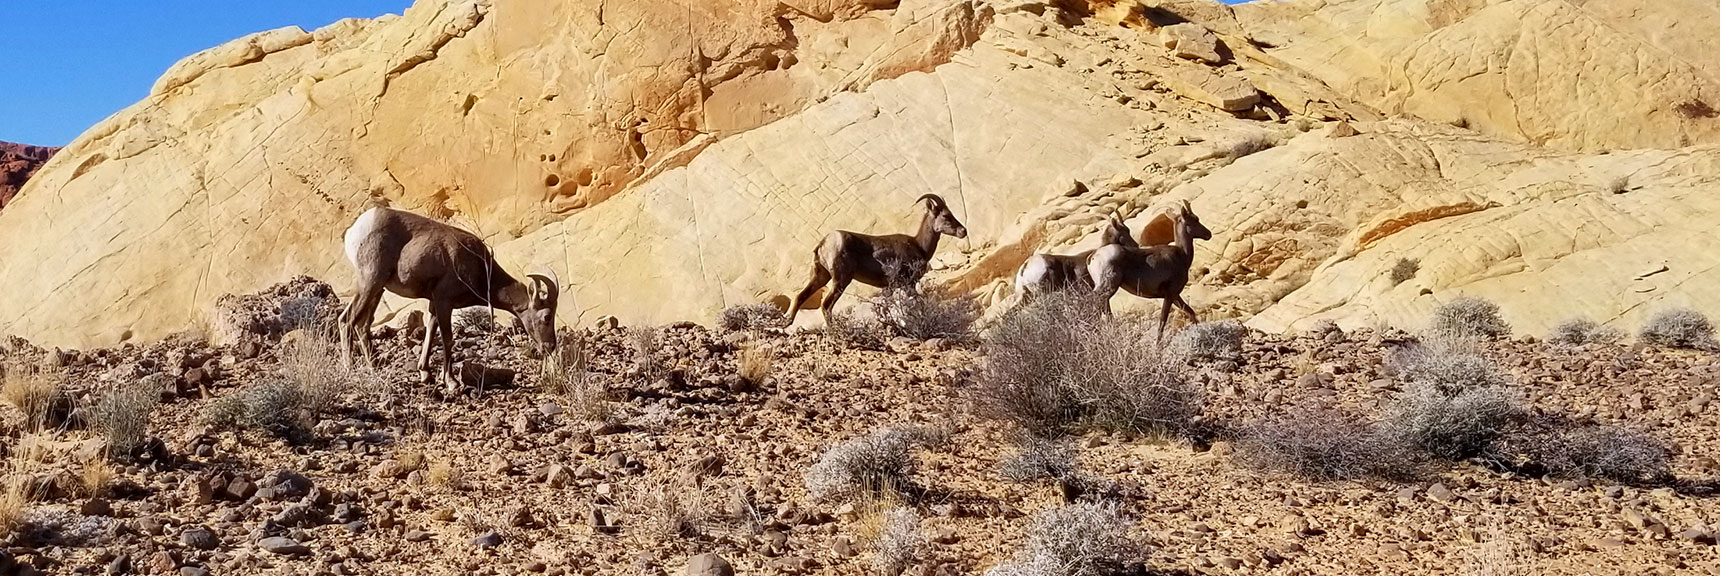 Bighorn Sheep at Silica Dome In Valley of Fire State Park, Nevada Slide 004